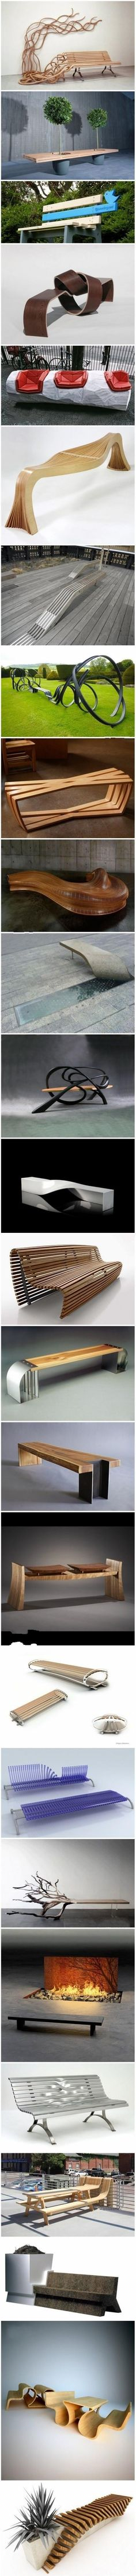 26 excellent public benches design (very different from the normal kind )@ Afshan Shahid